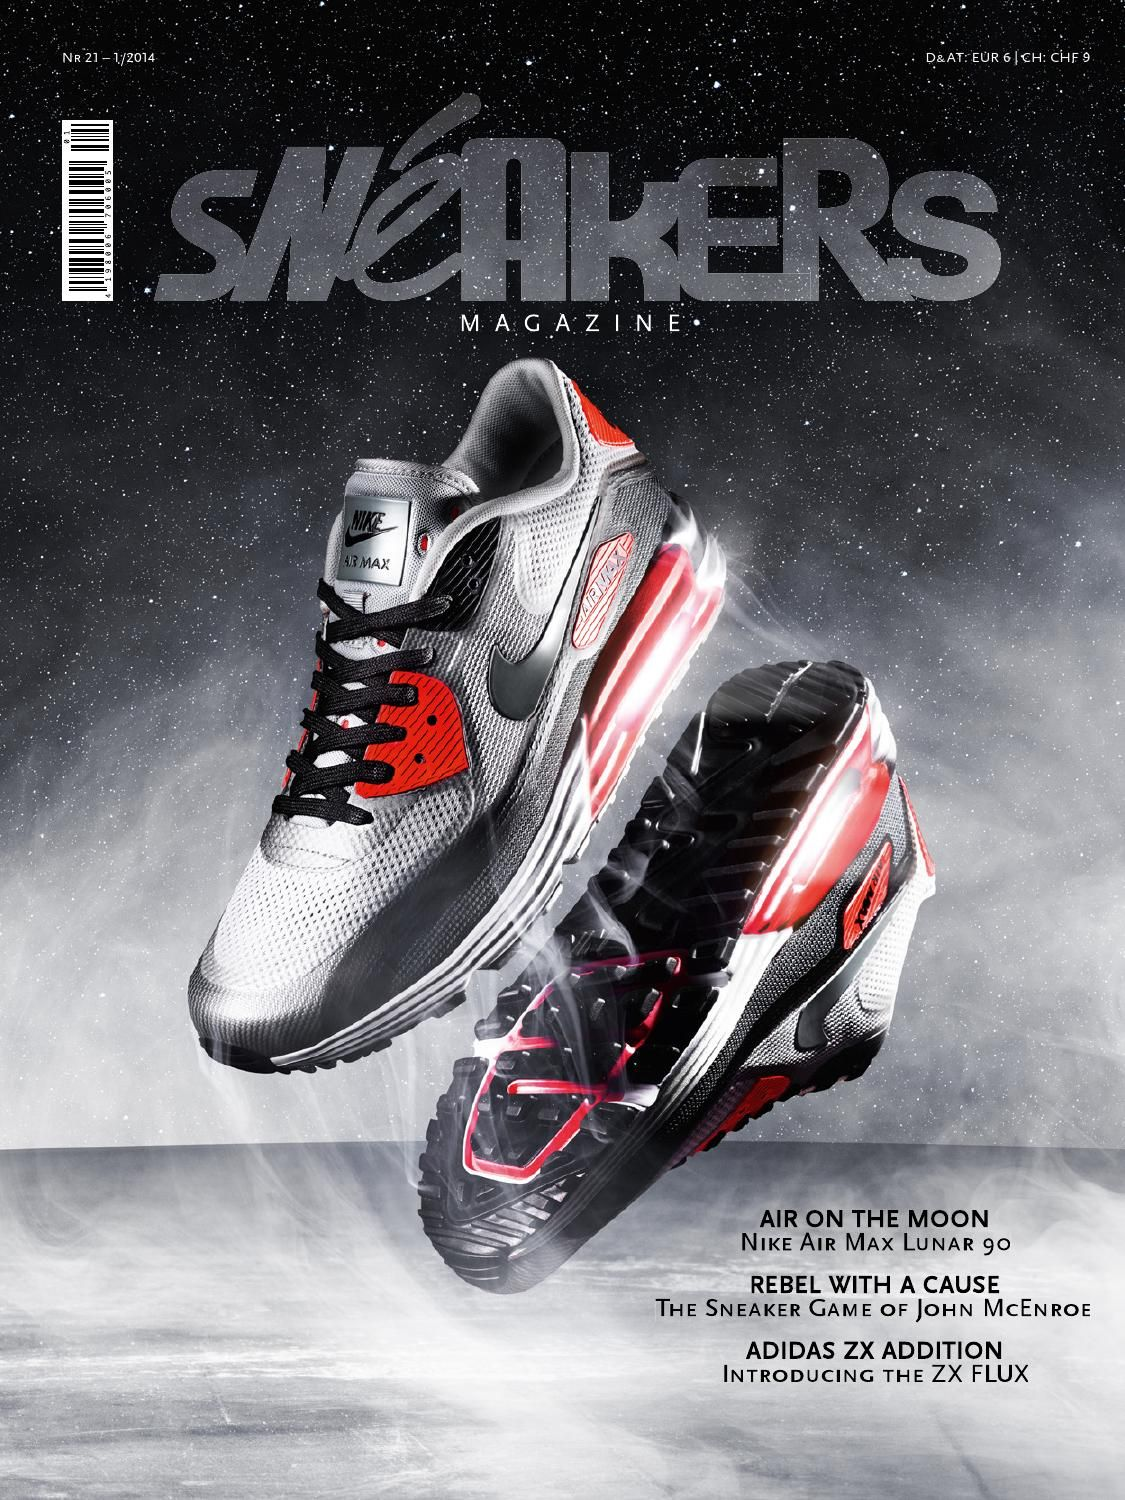 the latest 24735 dc9d1 ... Nike Air Max Lunar. ISSUU - Sneakers Magazine issue 21 by Monday  Publishing GmbH